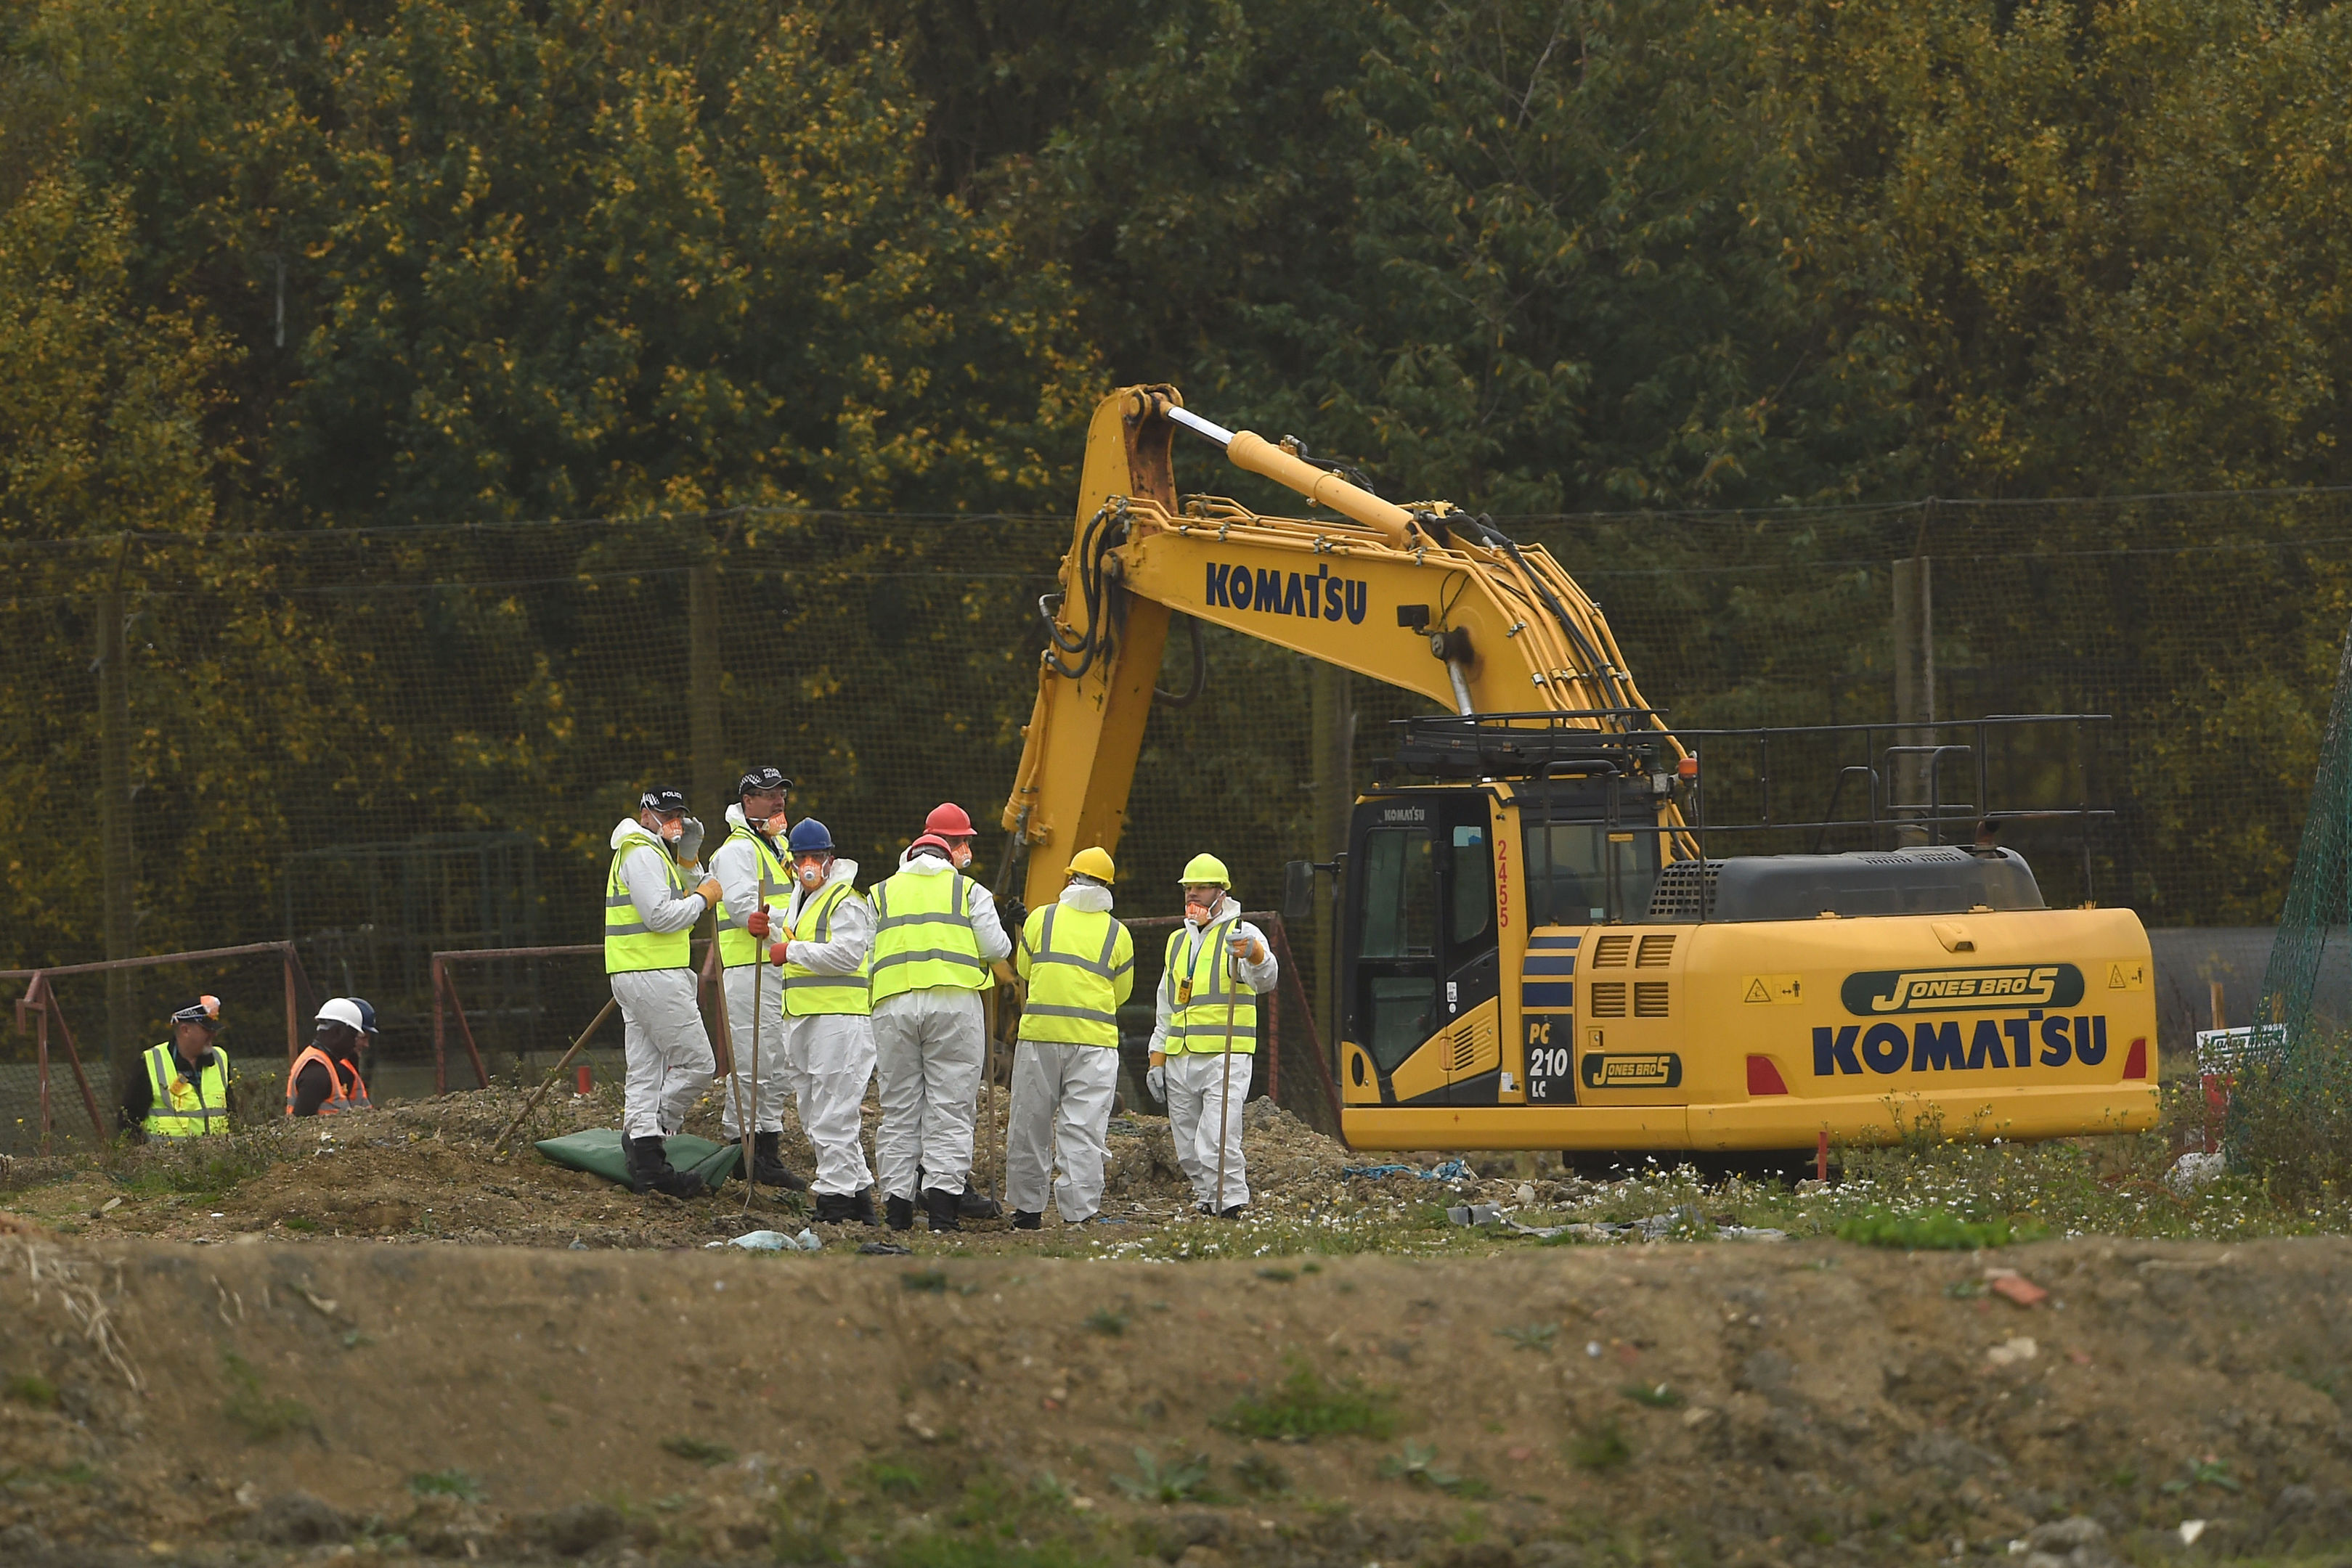 Police begin to search a new area of a landfill site in Milton, Cambridgeshire, for missing RAF gunner Corrie McKeague who was last seen on September 24 2016 in Bury St Edmunds, Suffolk.